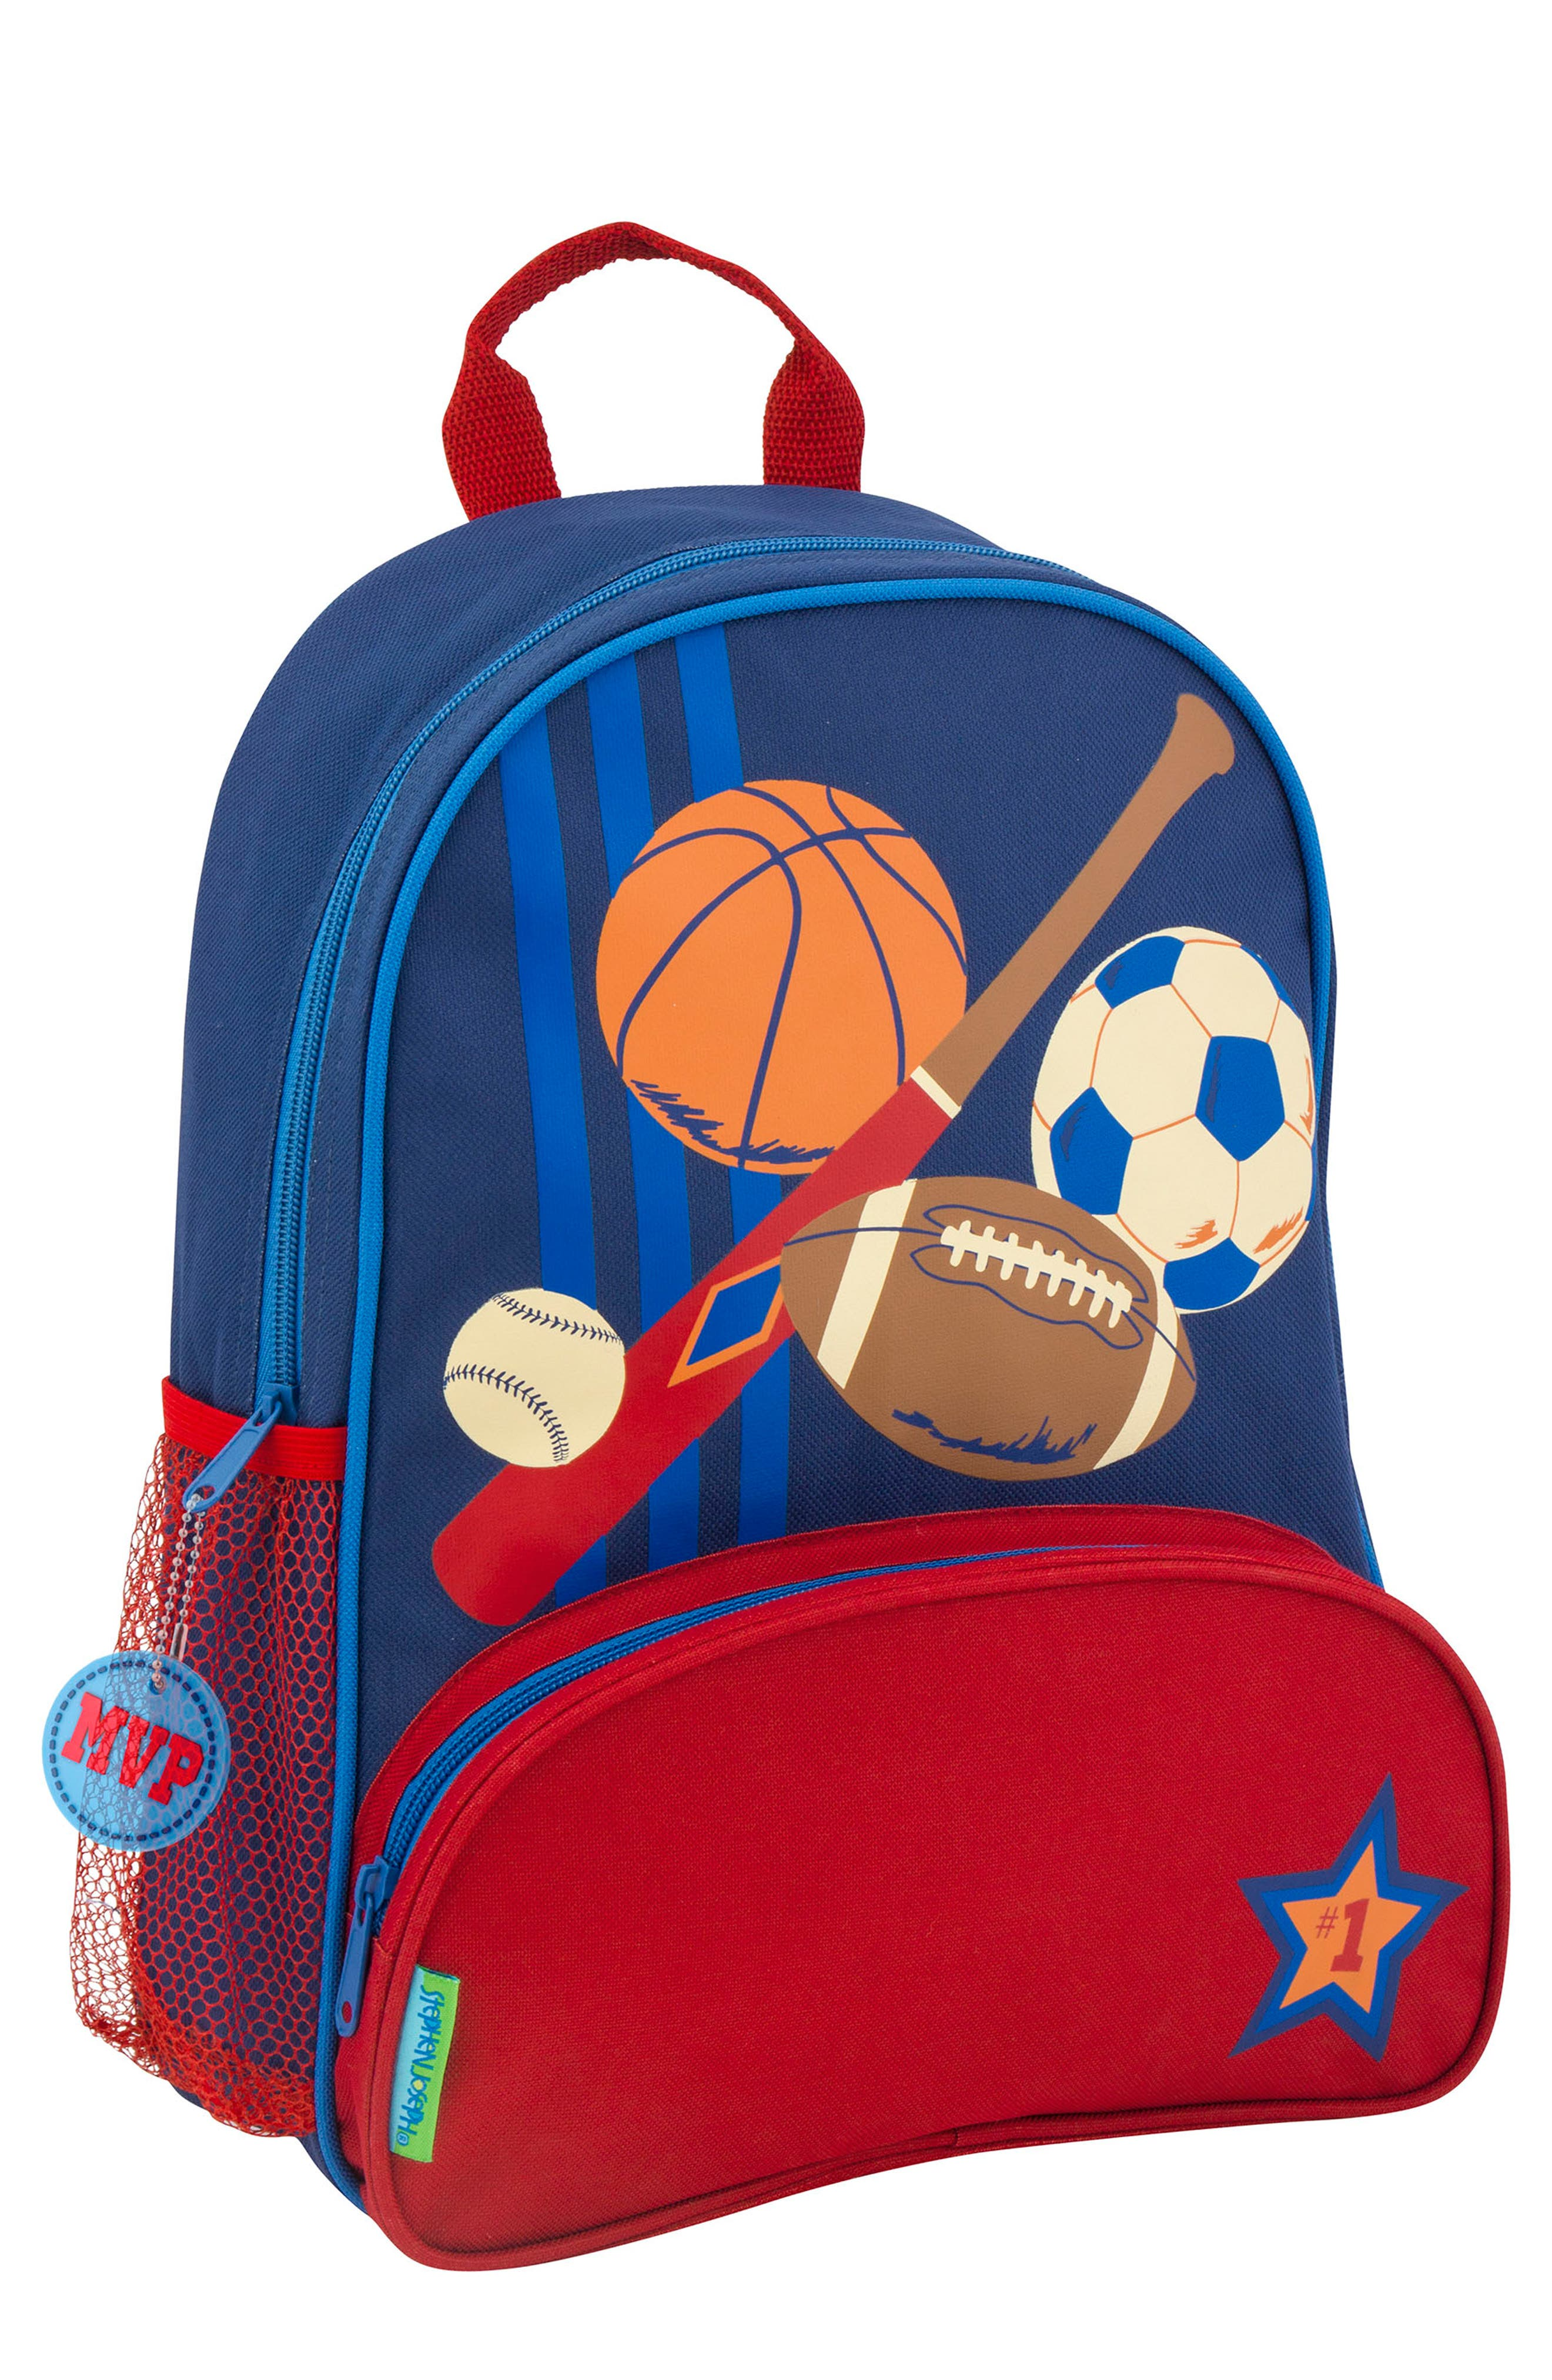 Sports Sidekick Backpack & Lunch Pal,                             Alternate thumbnail 4, color,                             SPORTS